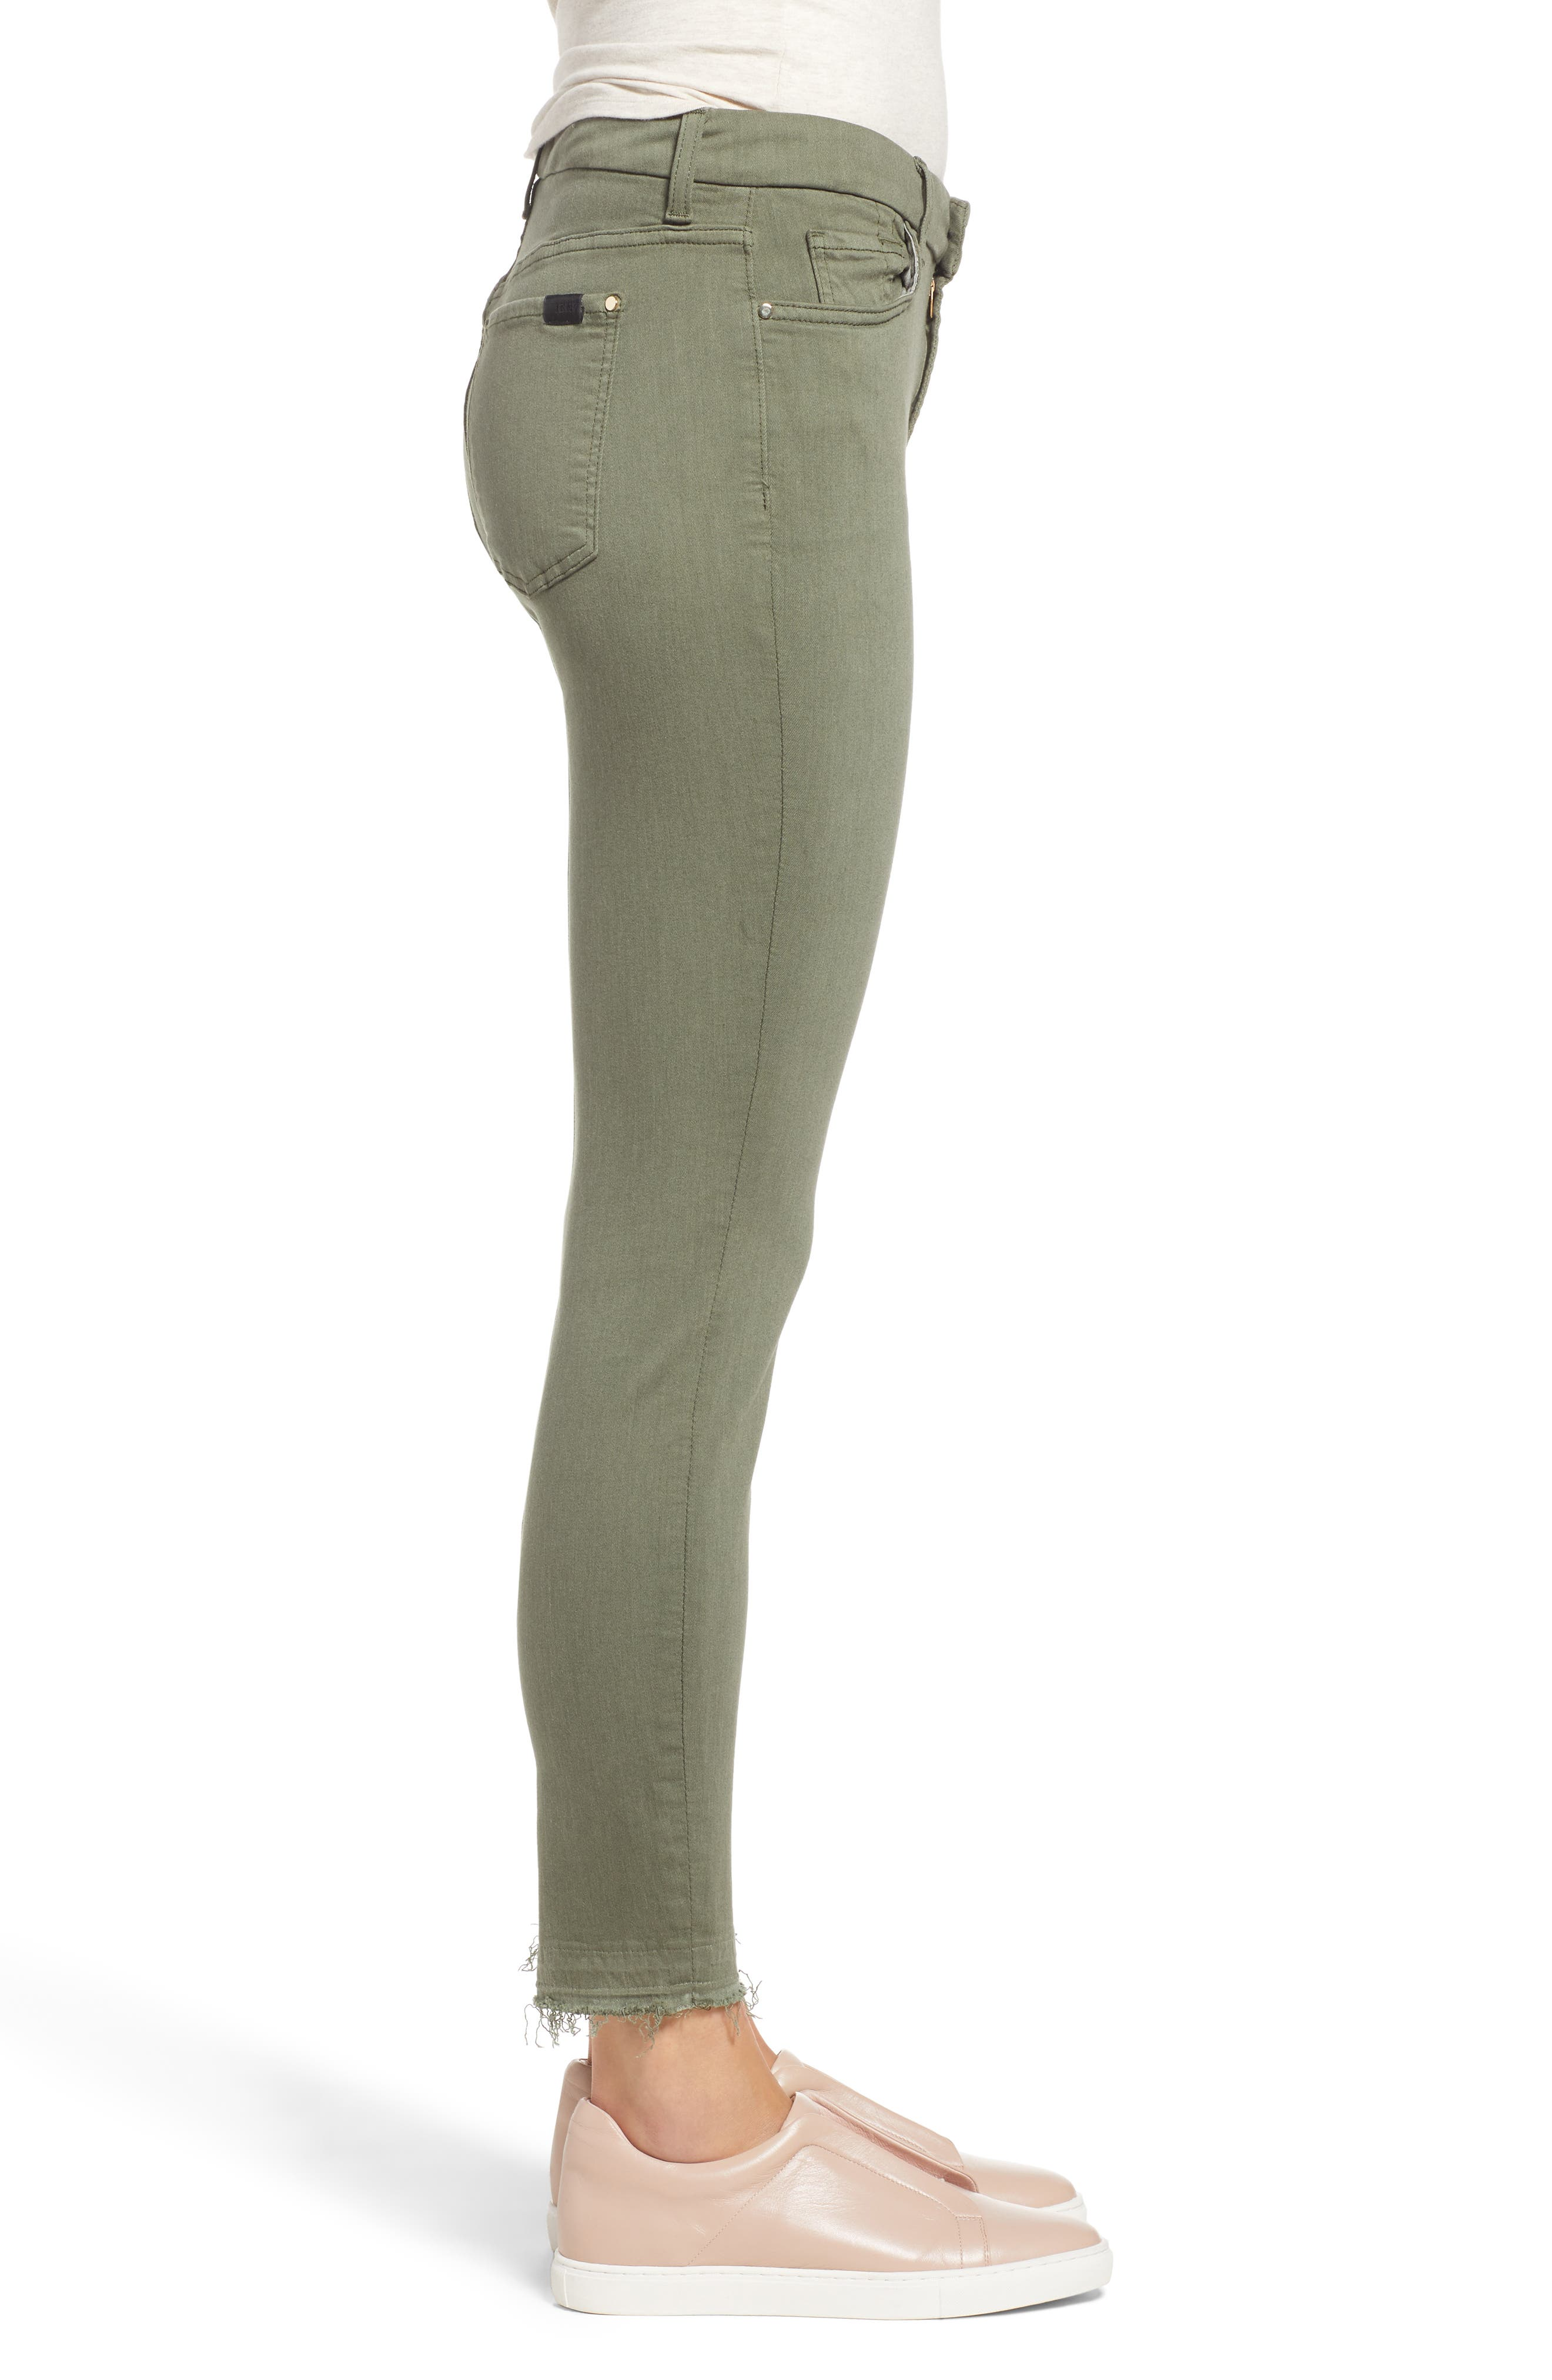 JEN7 BY 7 FOR ALL MANKIND, Release Hem Colored Ankle Skinny Jeans, Alternate thumbnail 4, color, WASHED FATIGUE